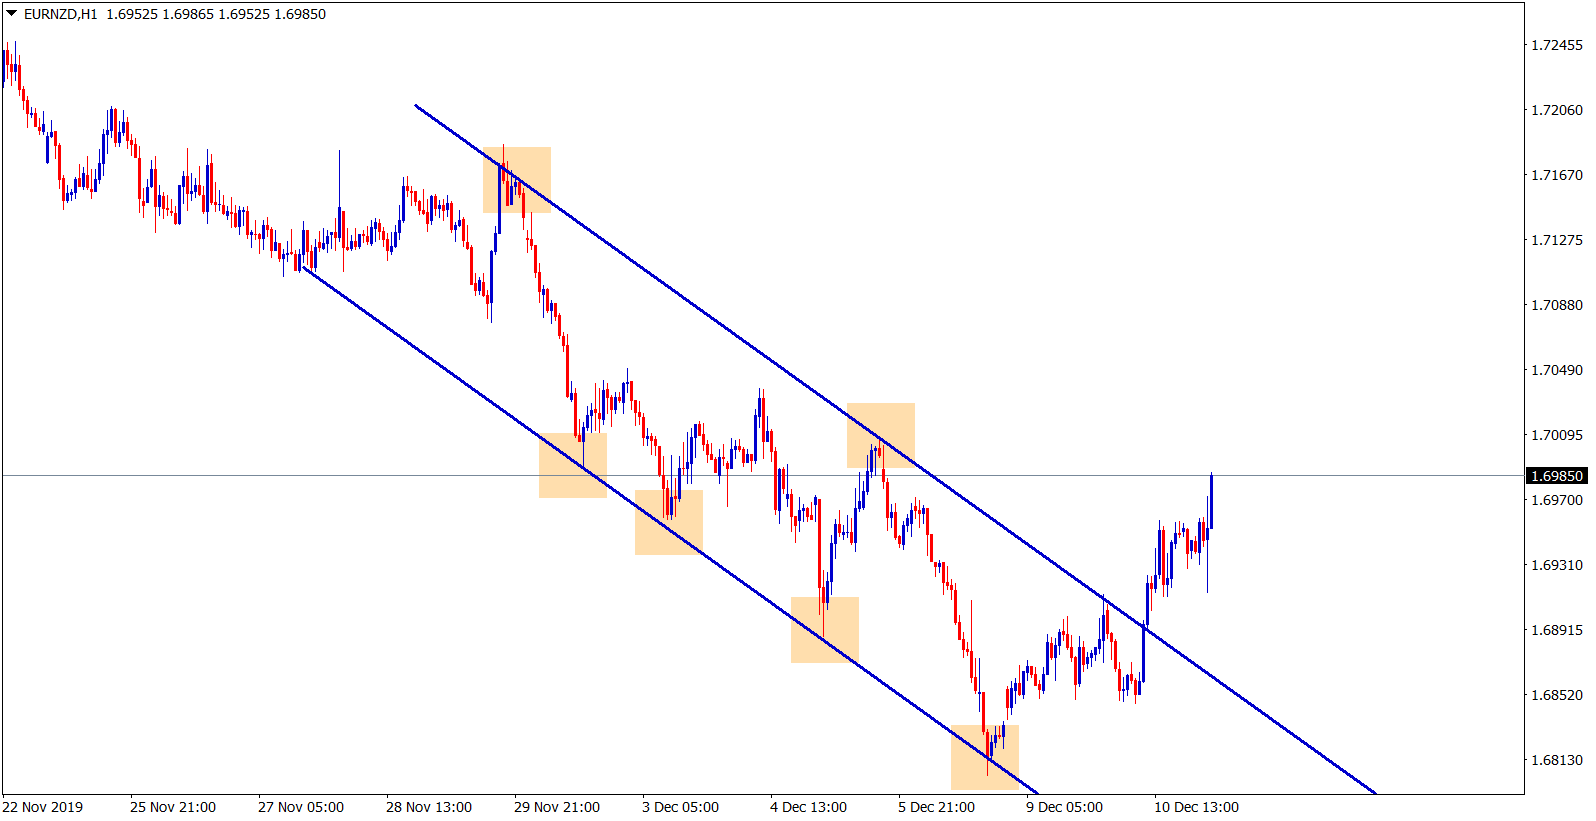 eur nzd broken the top zone in an downtrend